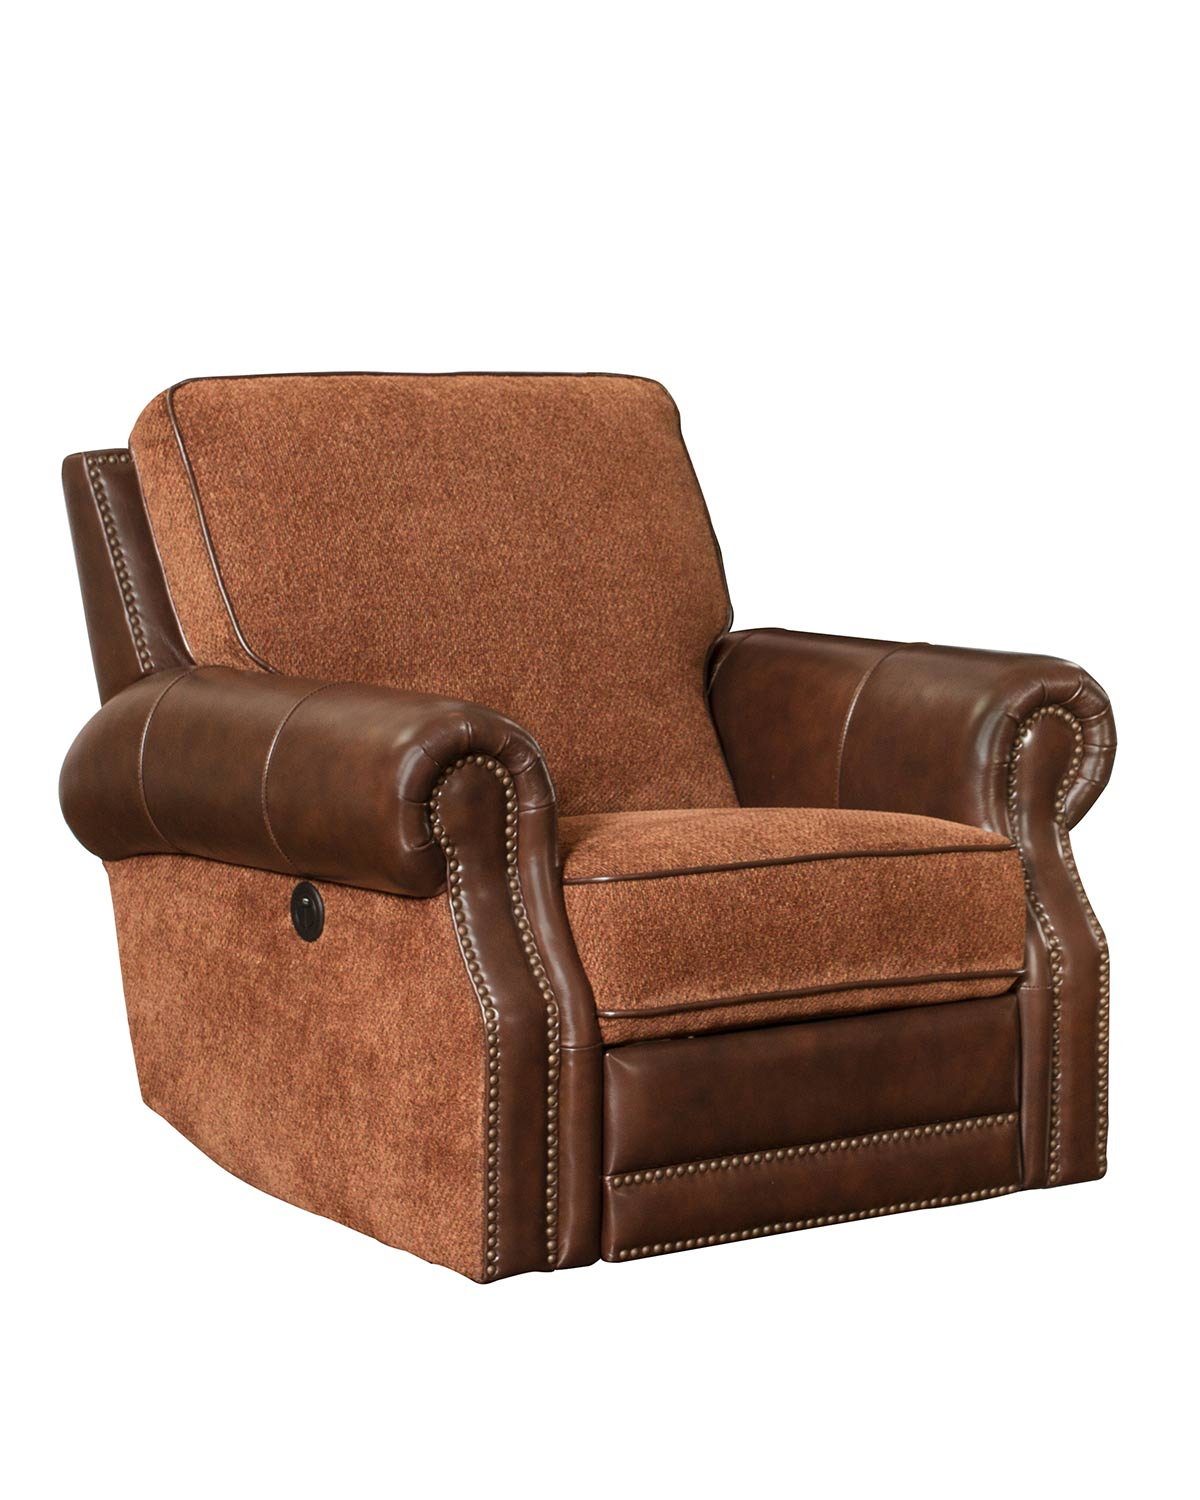 Barcalounger Jefferson Power Recliner Chair - Yadkin Bark/Caravane Auburn fabric